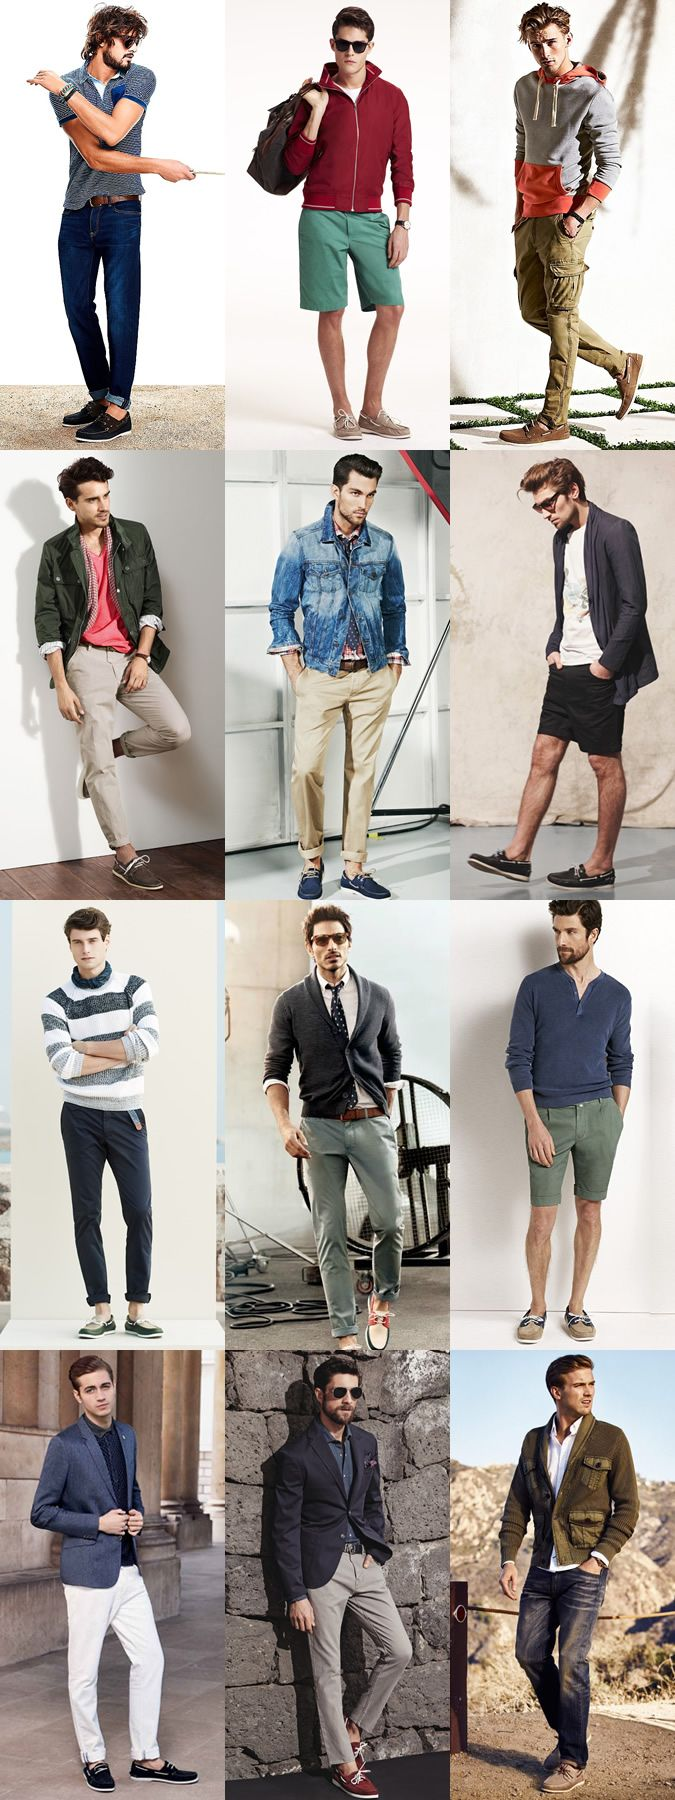 Top 5 Men's Summer Footwear Styles | Boat shoes outfit